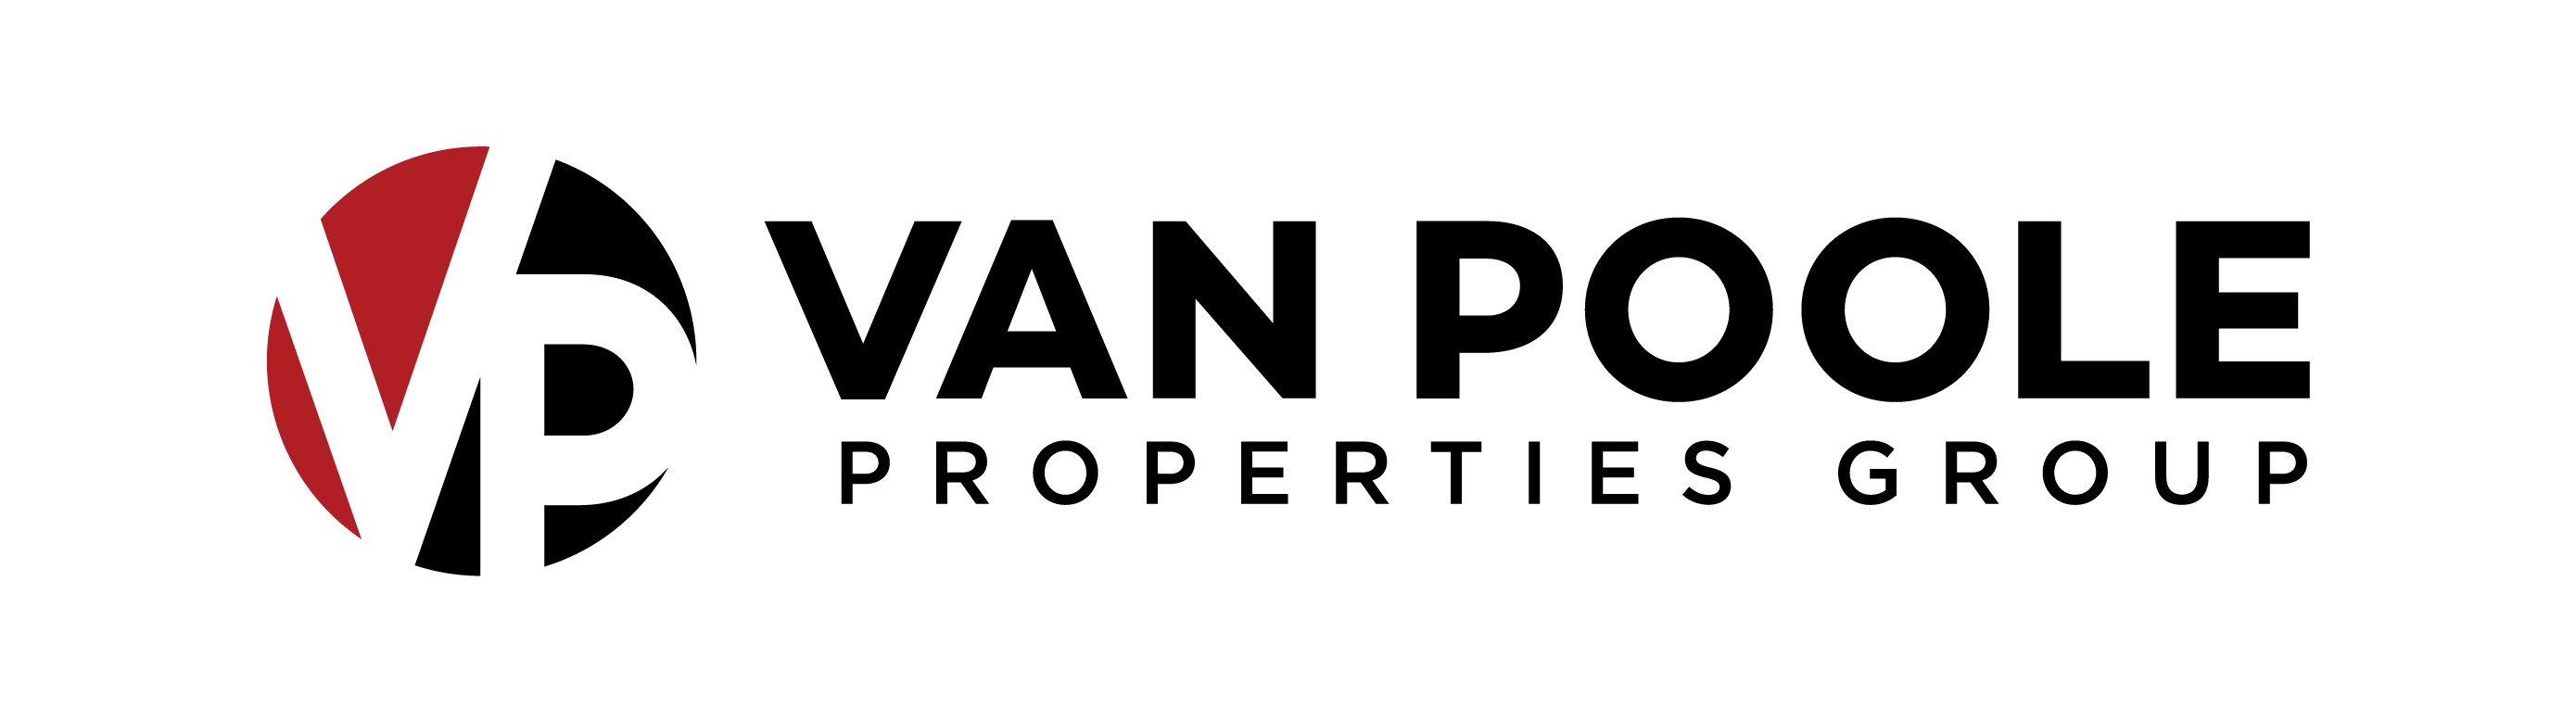 Van Poole Properties Group